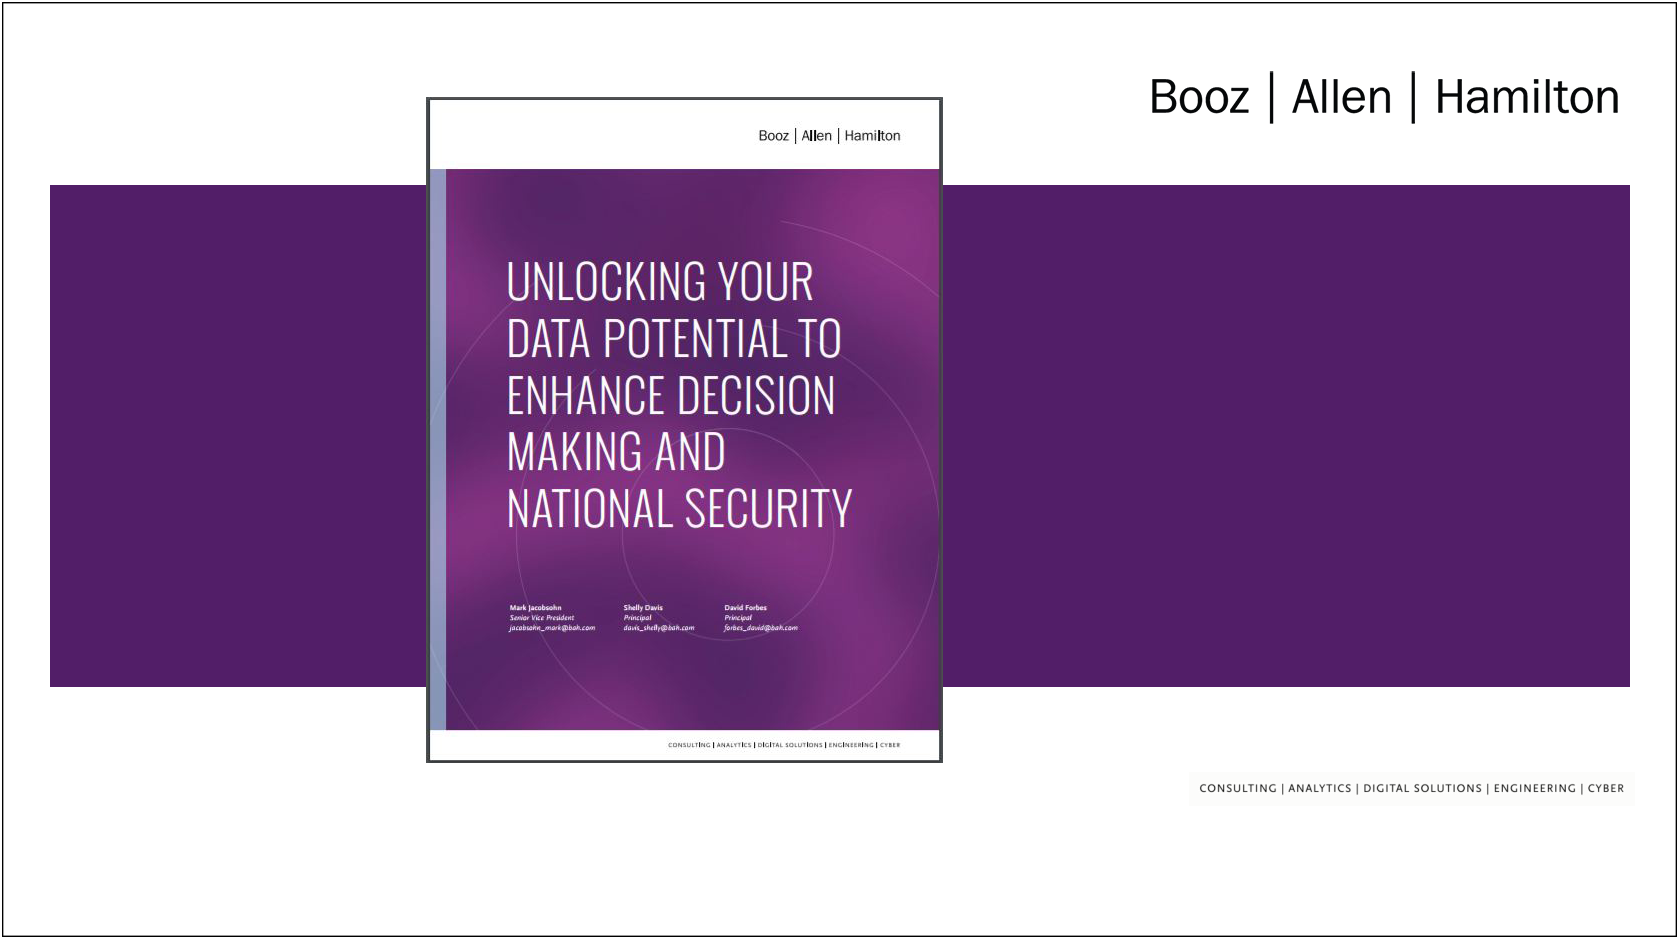 Unlocking Your Data Potential To Enhance Decision Making and National Security – Thought Piece